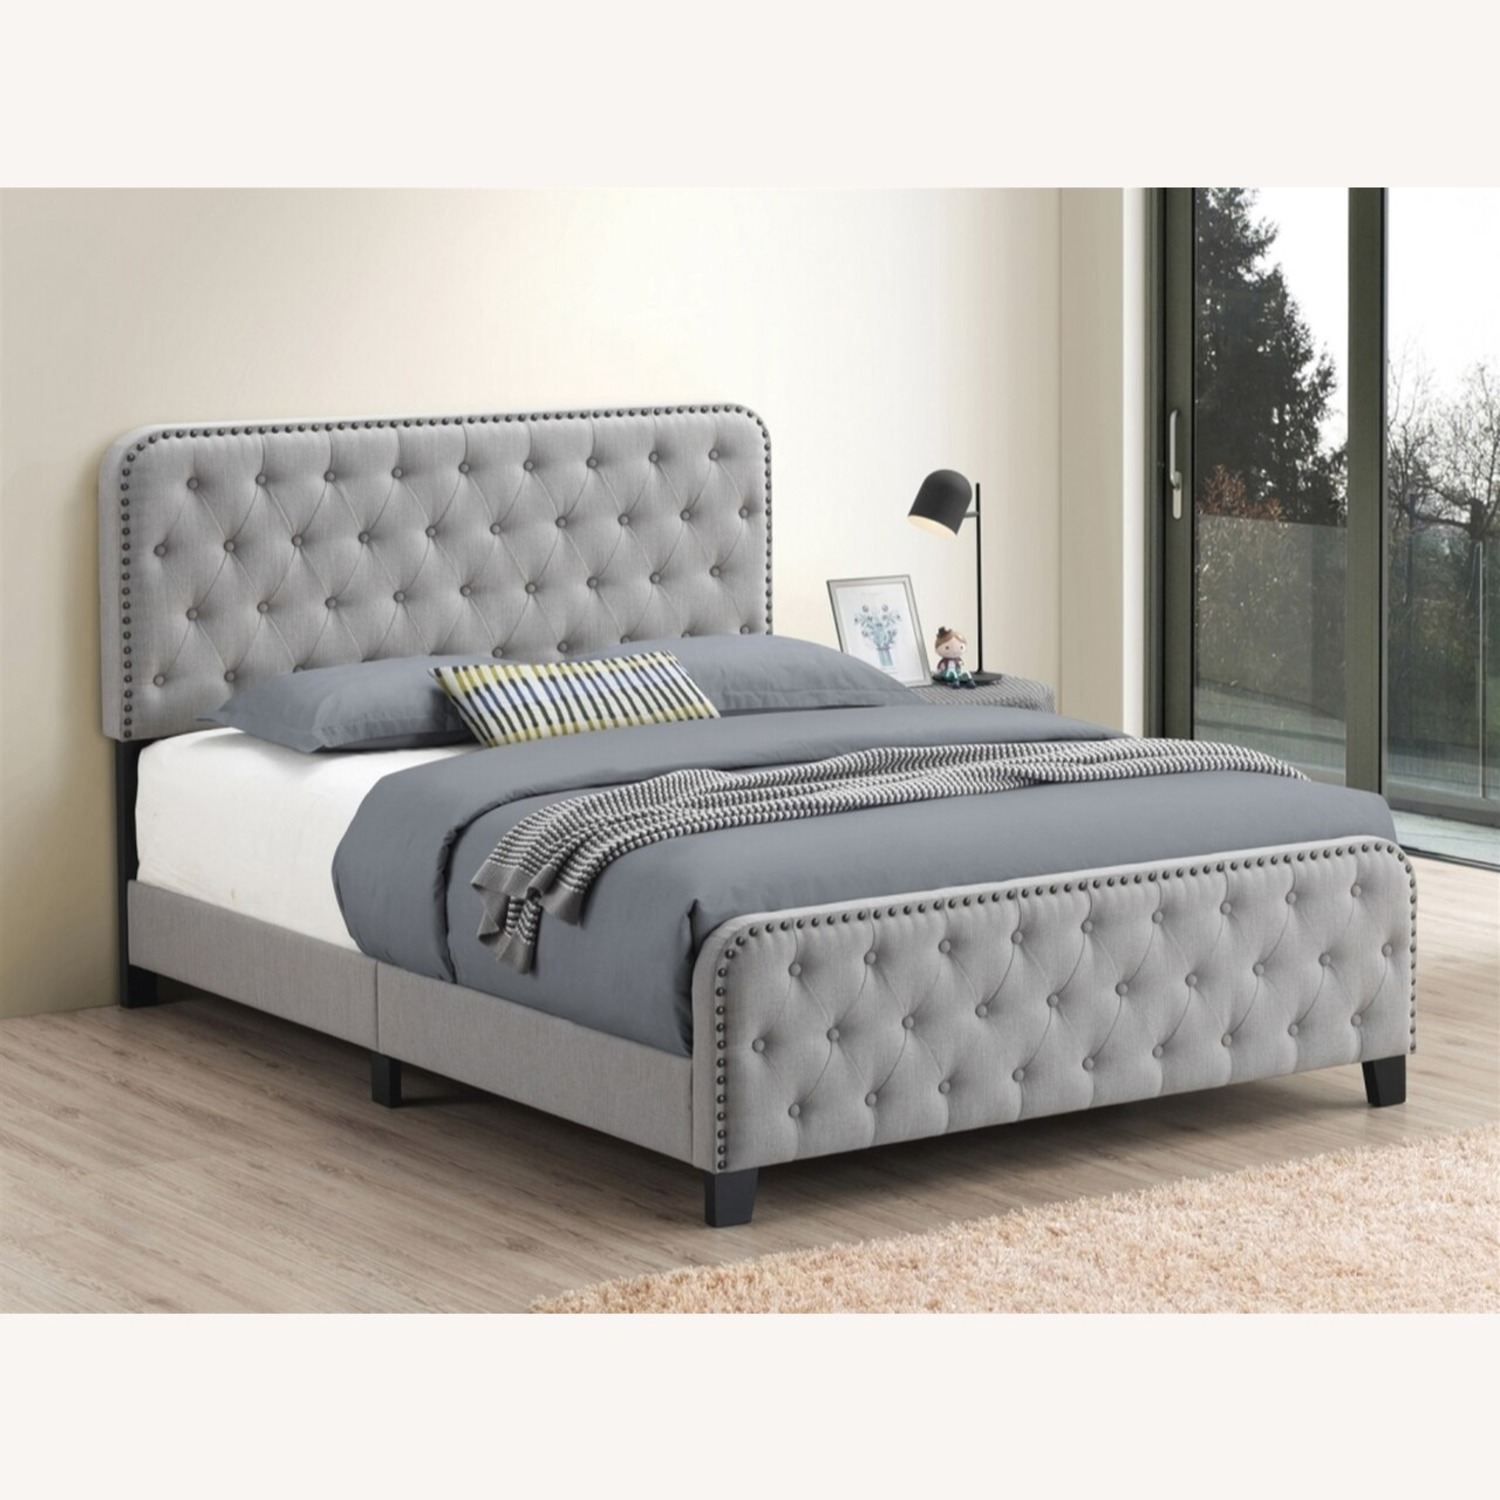 Comfortable King Bed In Mineral Linen - image-2